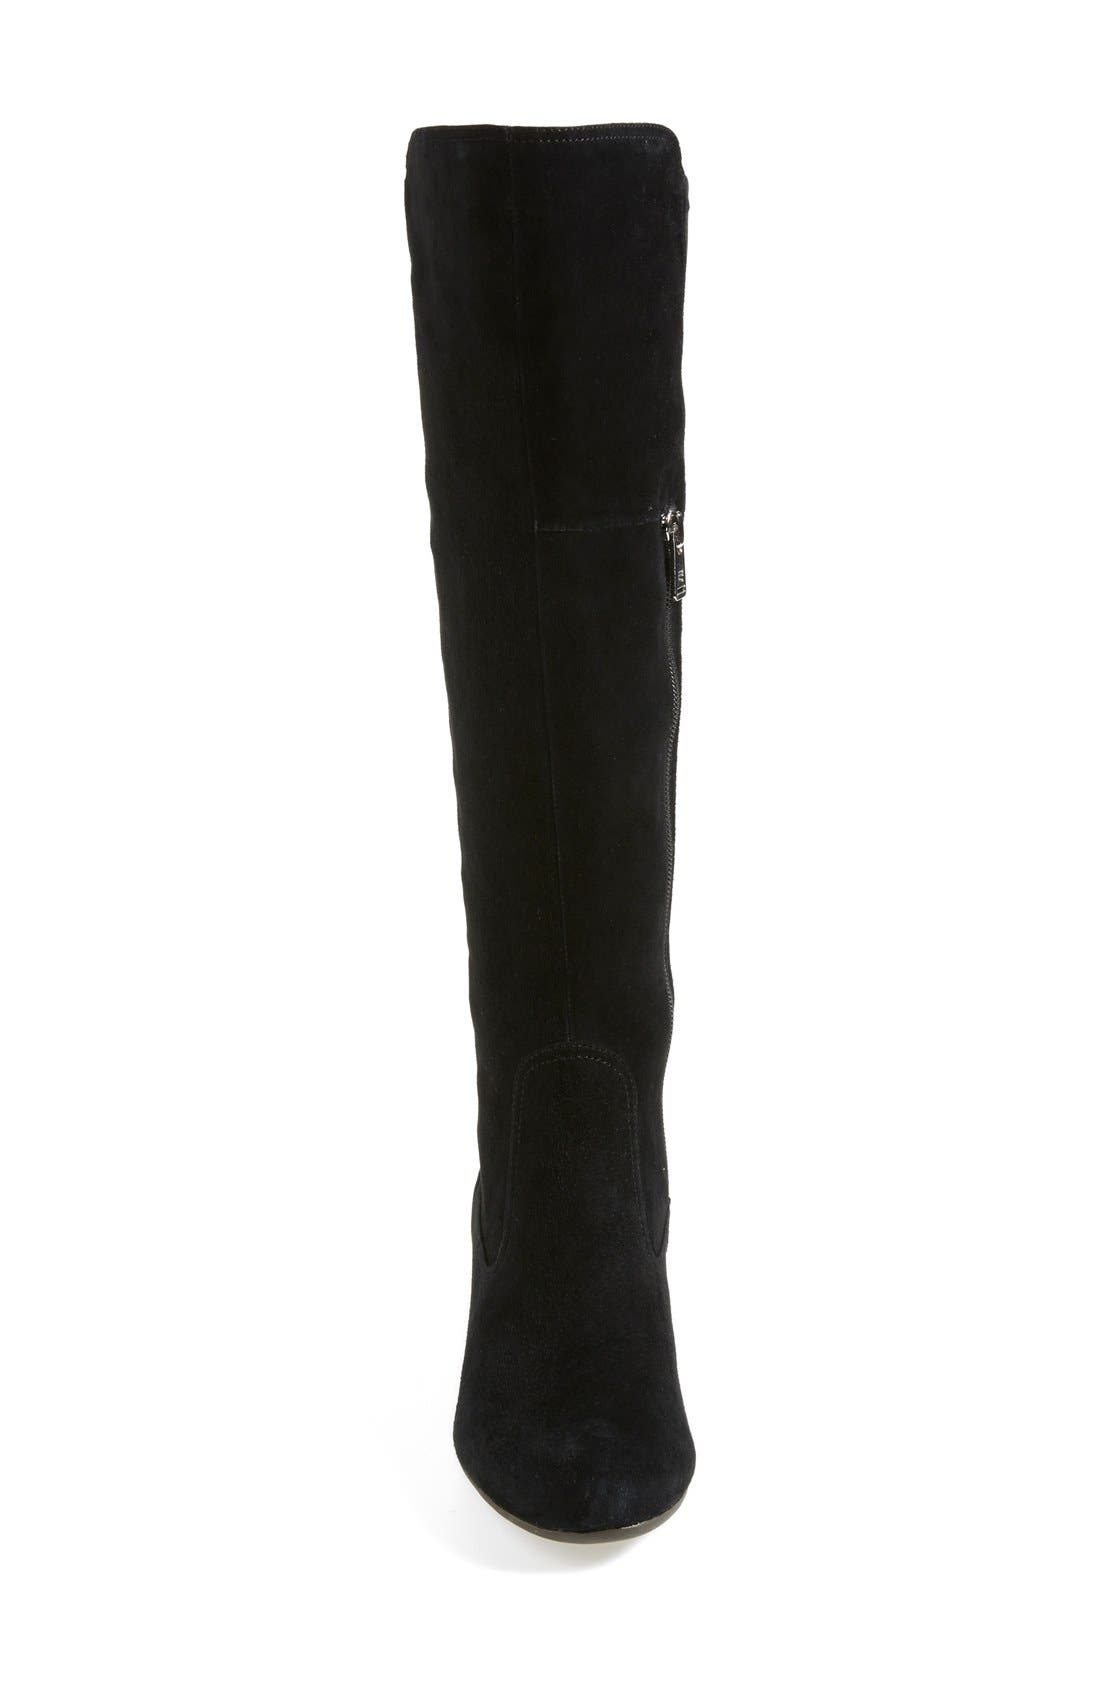 Alternate Image 3  - Rockport 'Total Motion' Suede Boot (Wide Calf) (Women)